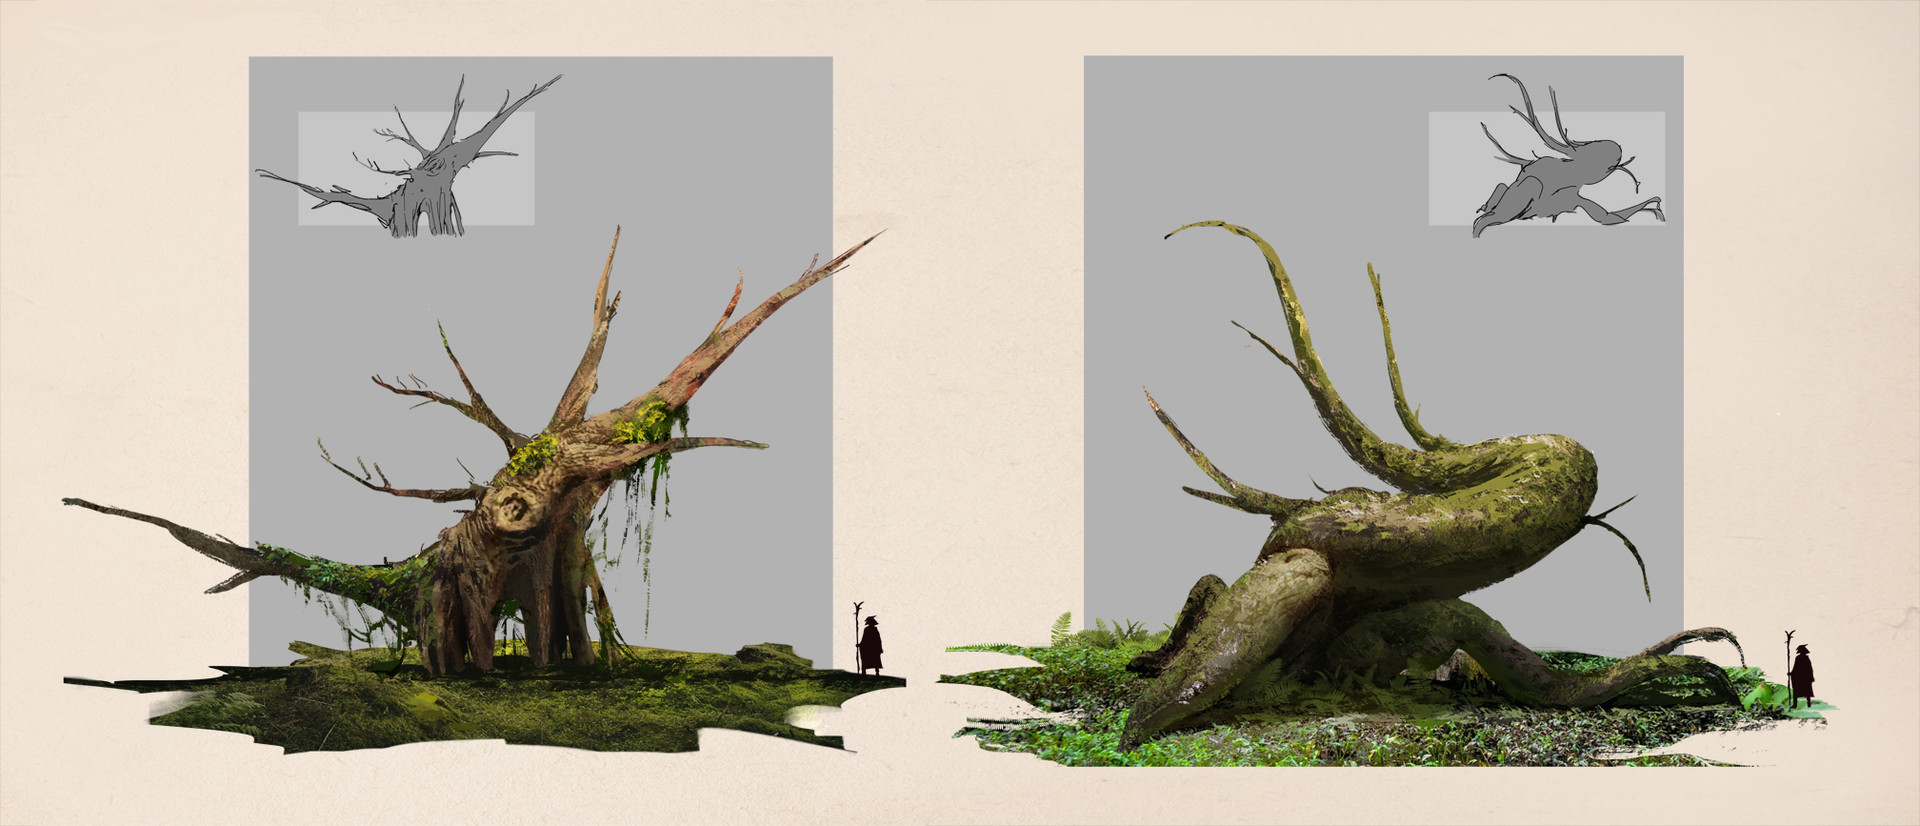 Quentin castel trees concept photobashing